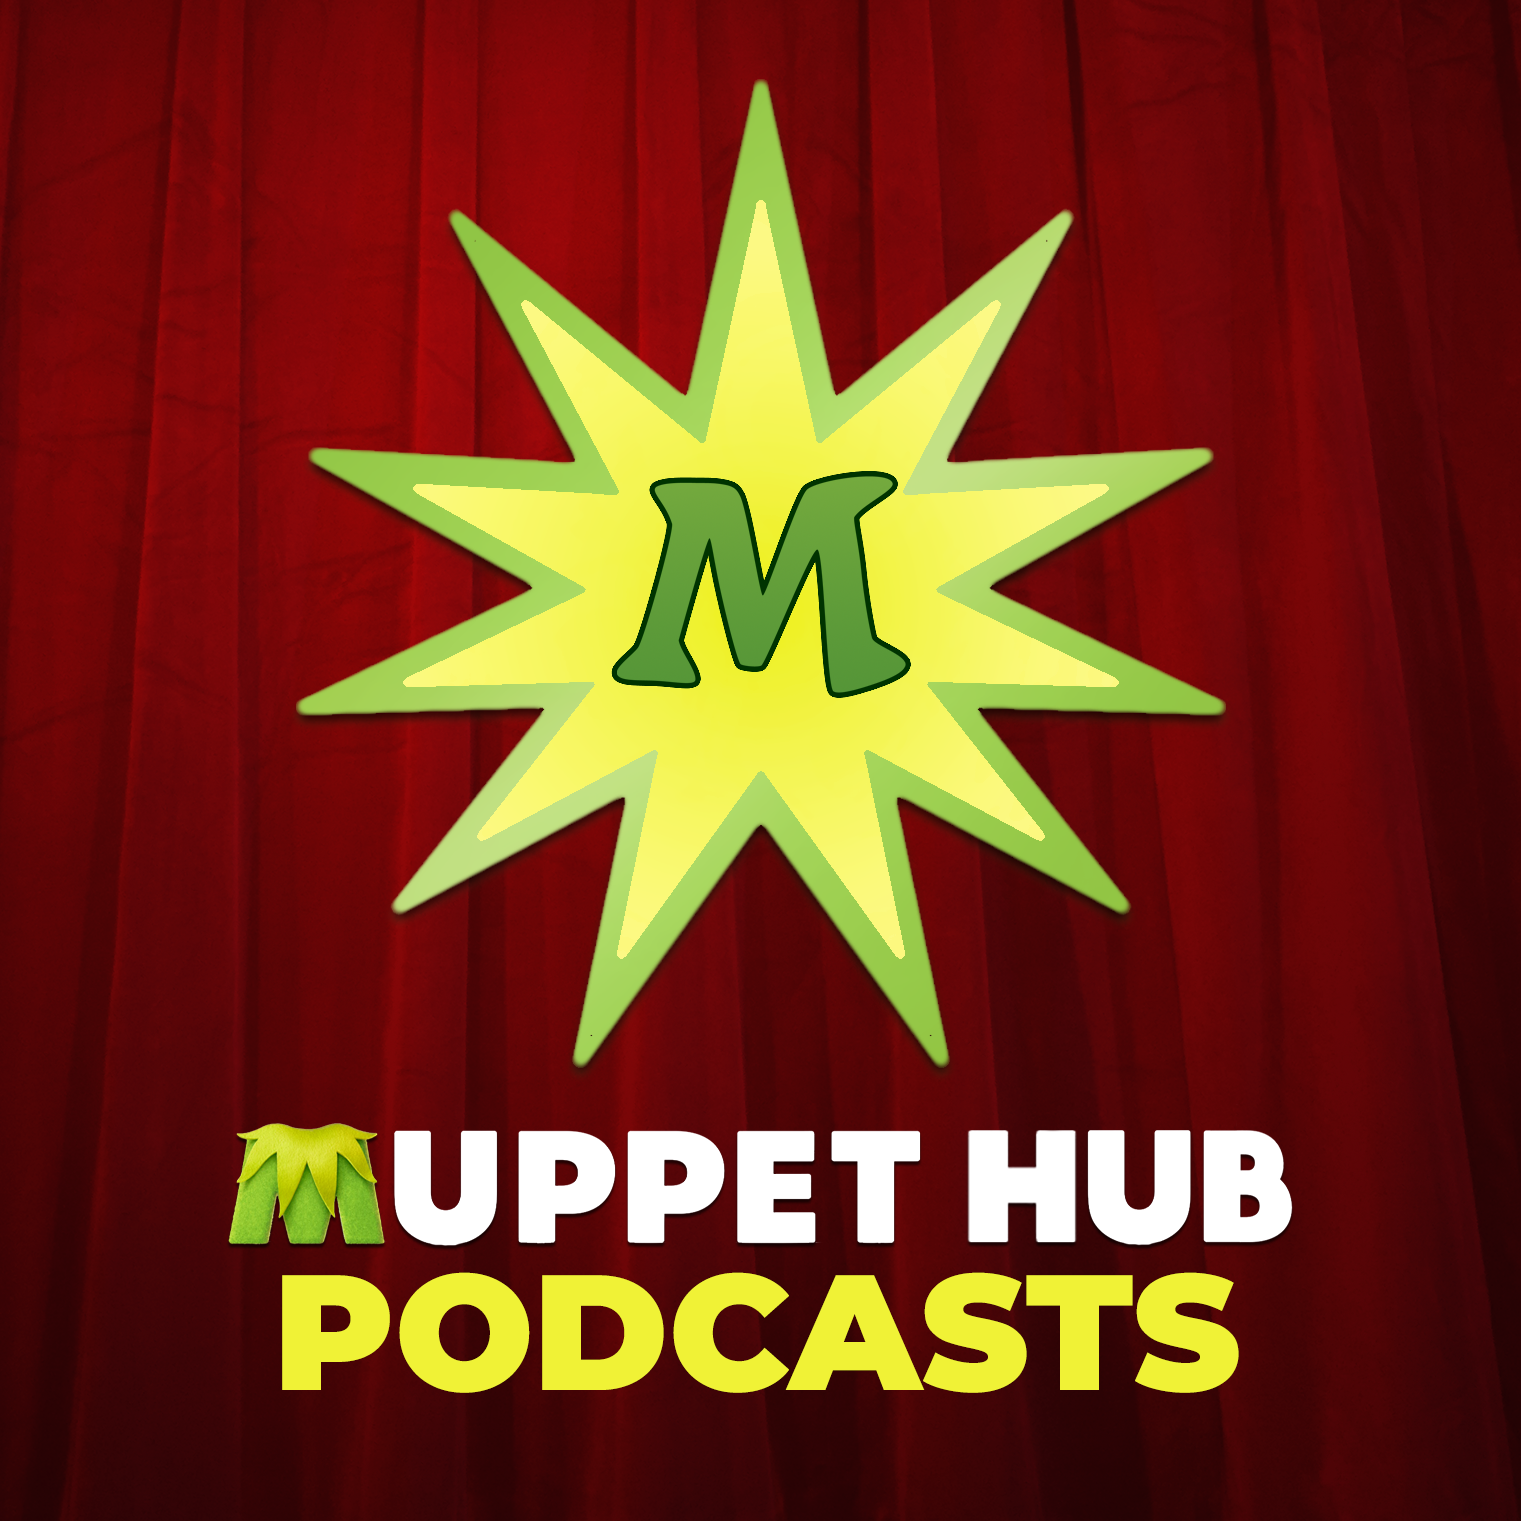 Muppet Hub Podcasts